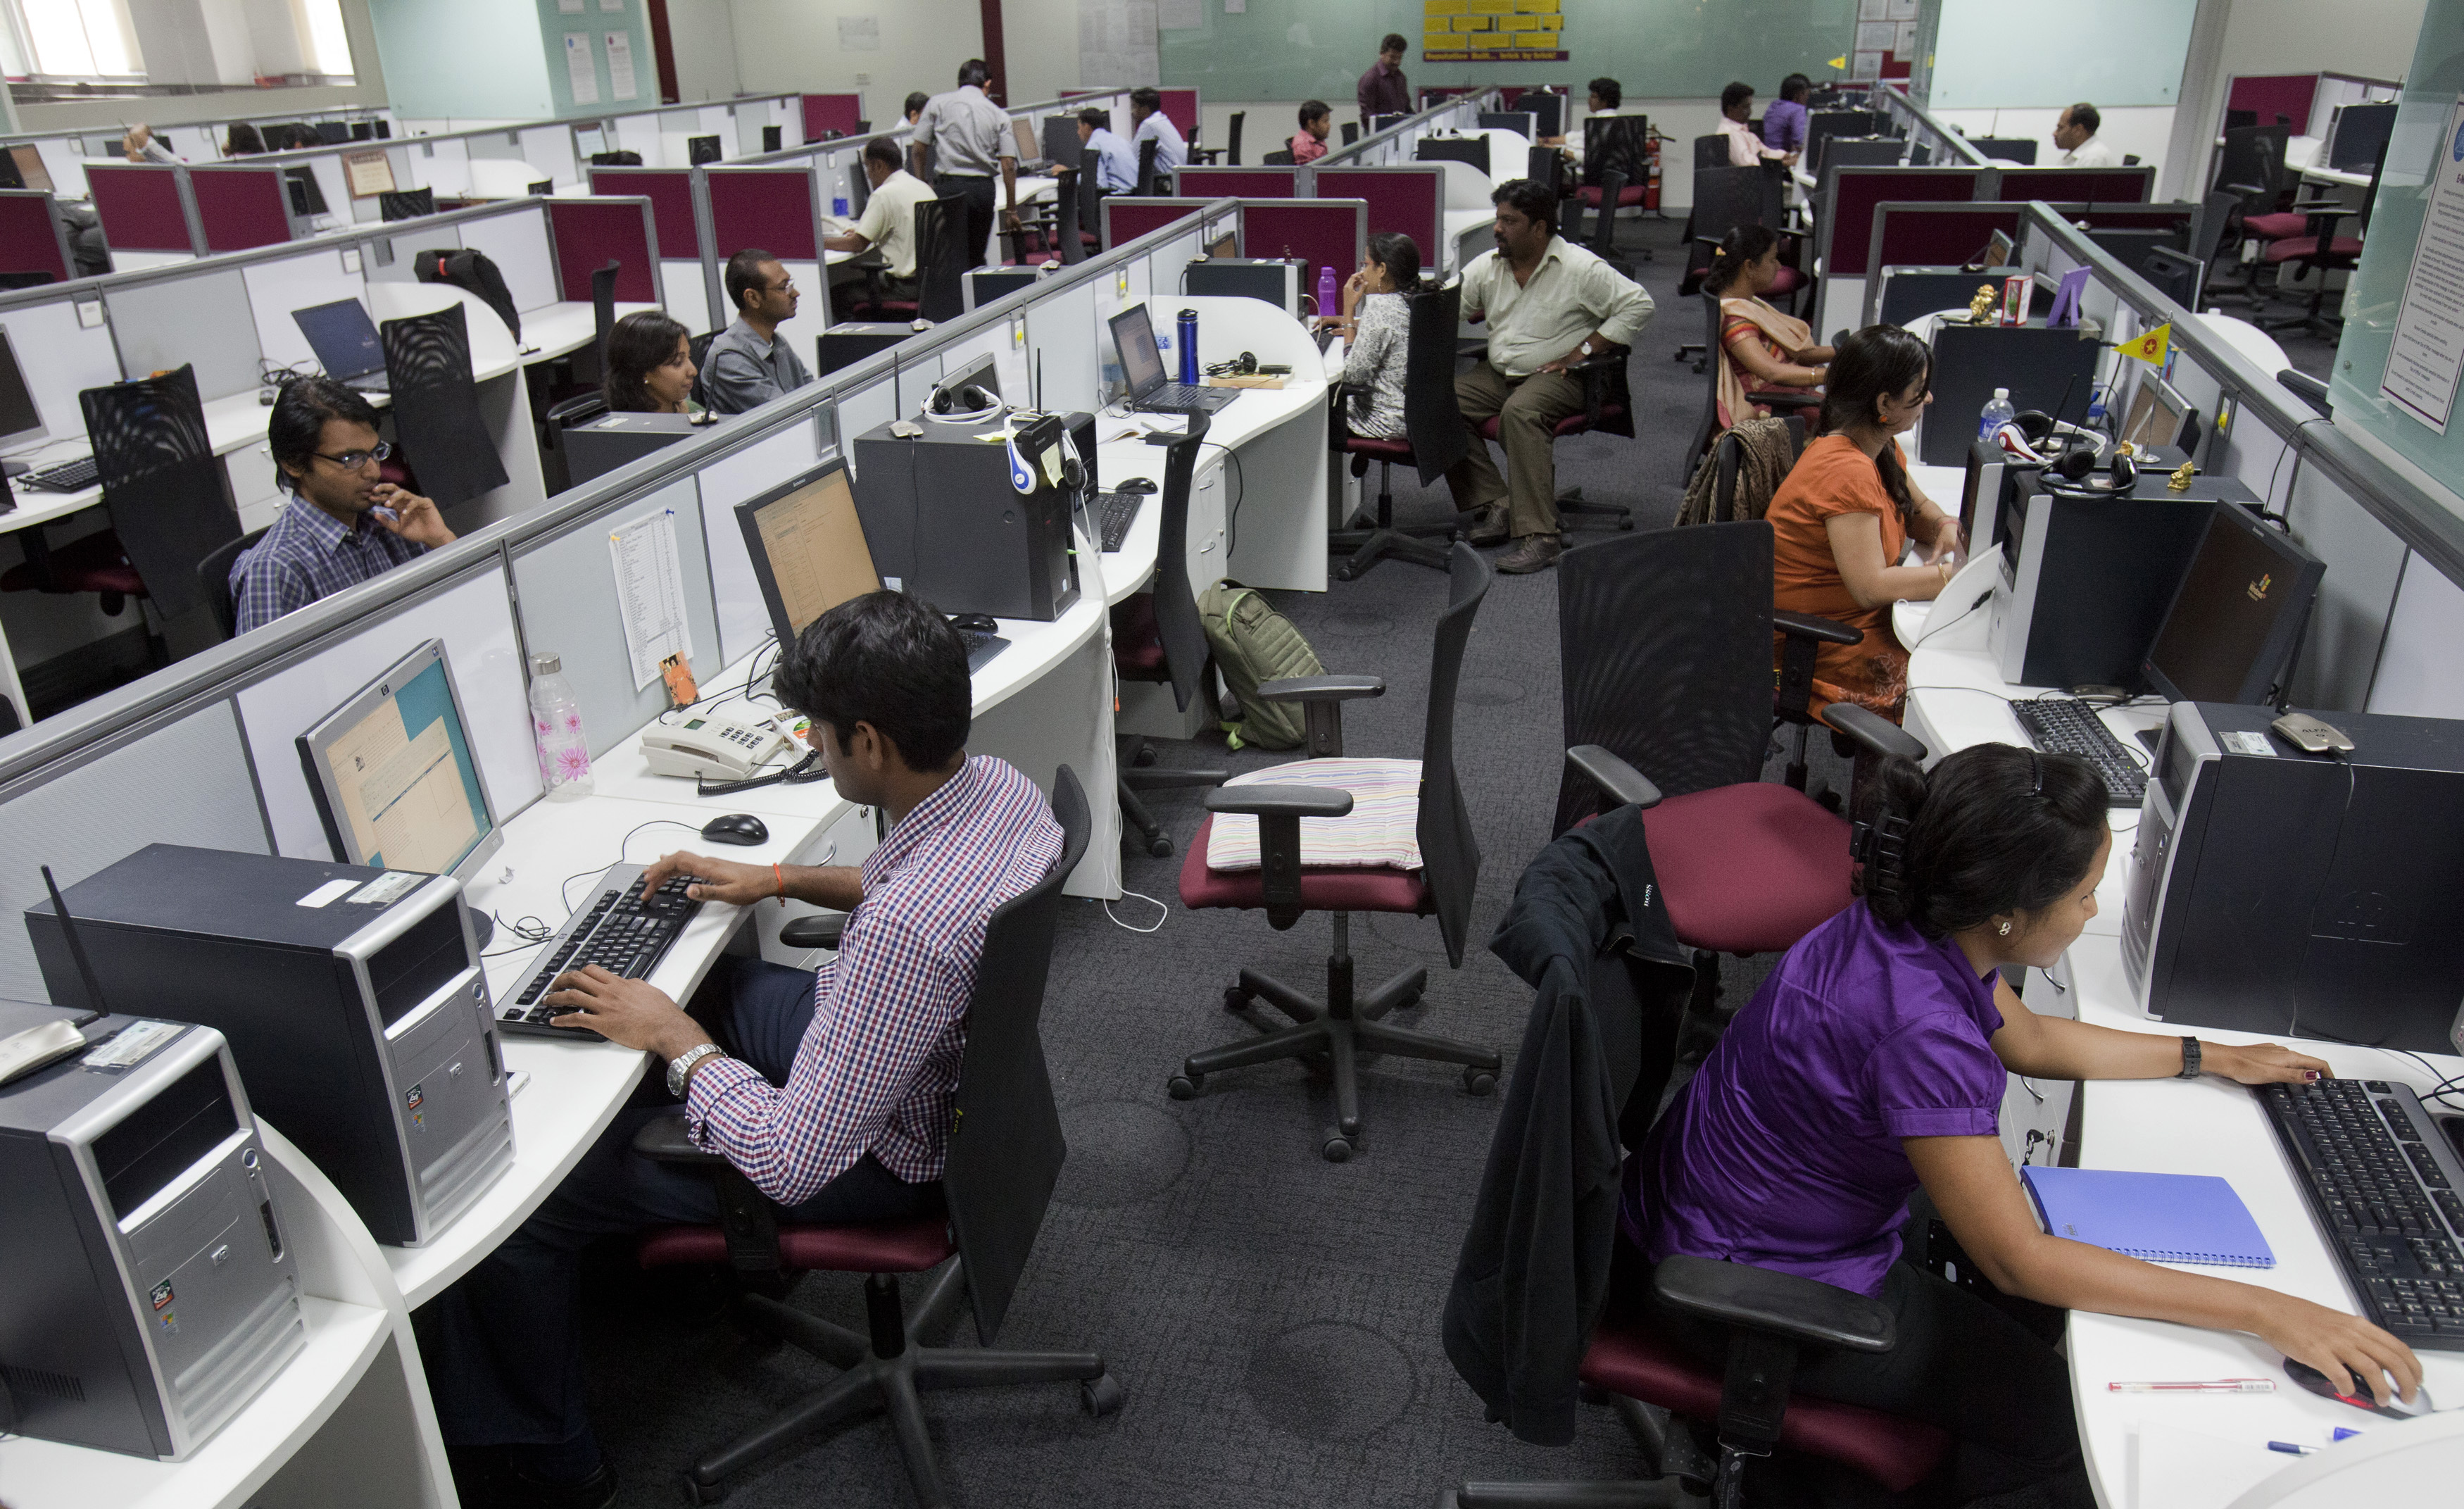 Workers are seen at their workstations on the floor of an outsourcing centre in Bangalore, February 29, 2012. India's IT industry, with Bangalore firms forming the largest component, is now worth an annual $100 billion and growing 14 percent per year, one of the few bright spots in an economy blighted by policy stagnation and political instability. Picture taken on February 29, 2012. To match Insight INDIA-OUTSOURCING/   REUTERS/Vivek Prakash (INDIA - Tags: BUSINESS EMPLOYMENT SCIENCE TECHNOLOGY) - GM1E8450SWY01